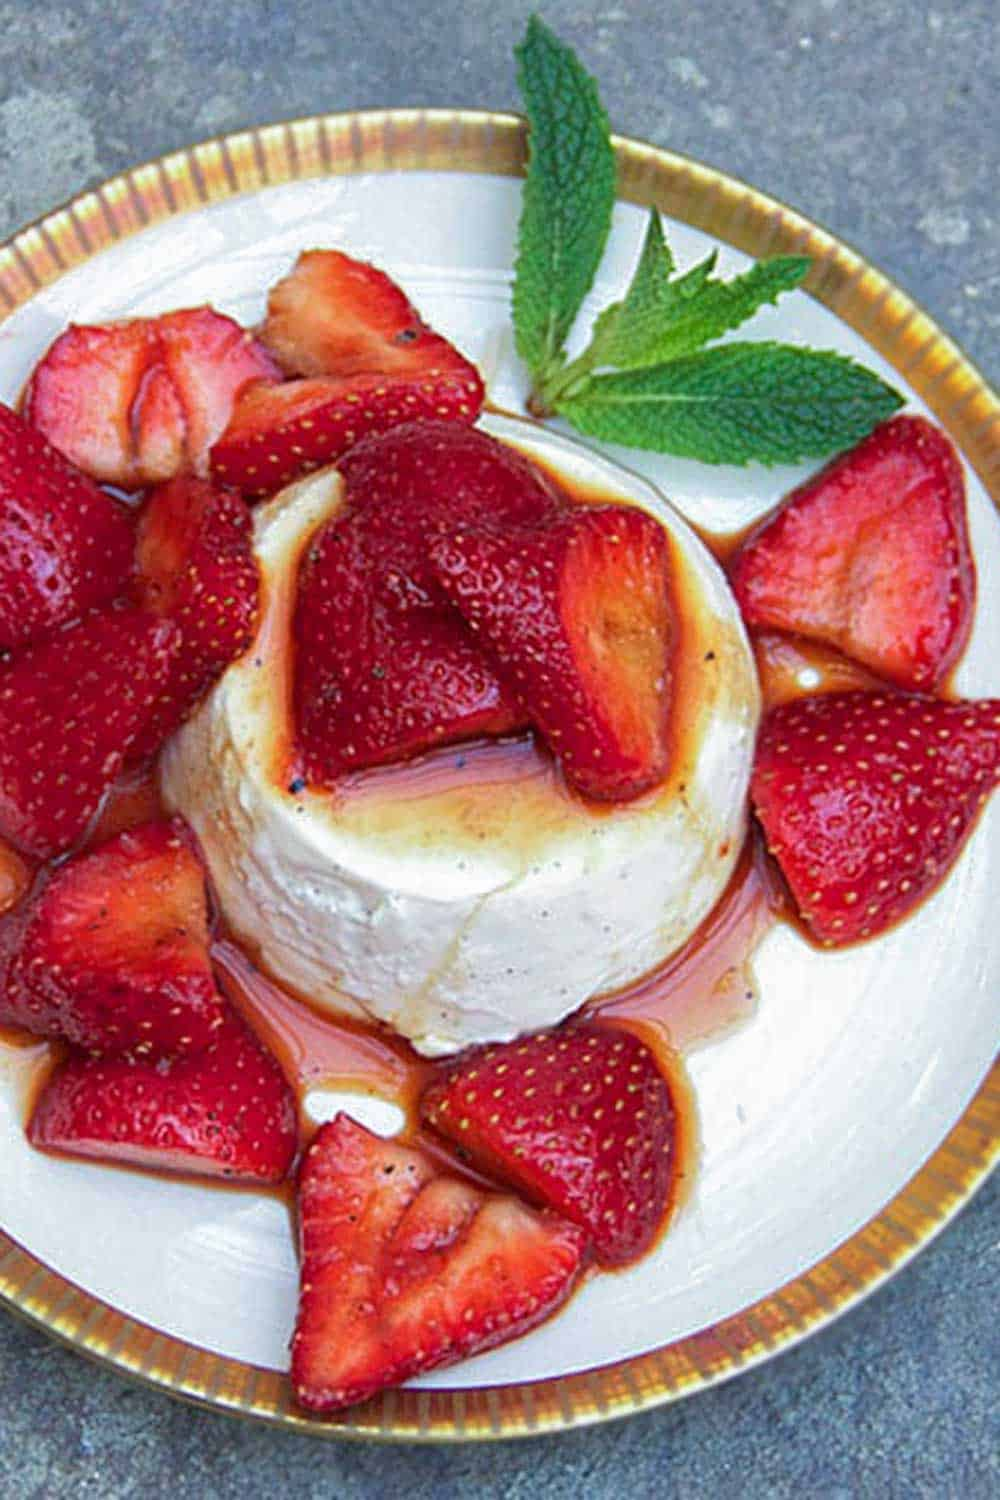 vanilla panna cotta surrounded by and topped with balsamic marinated strawberries